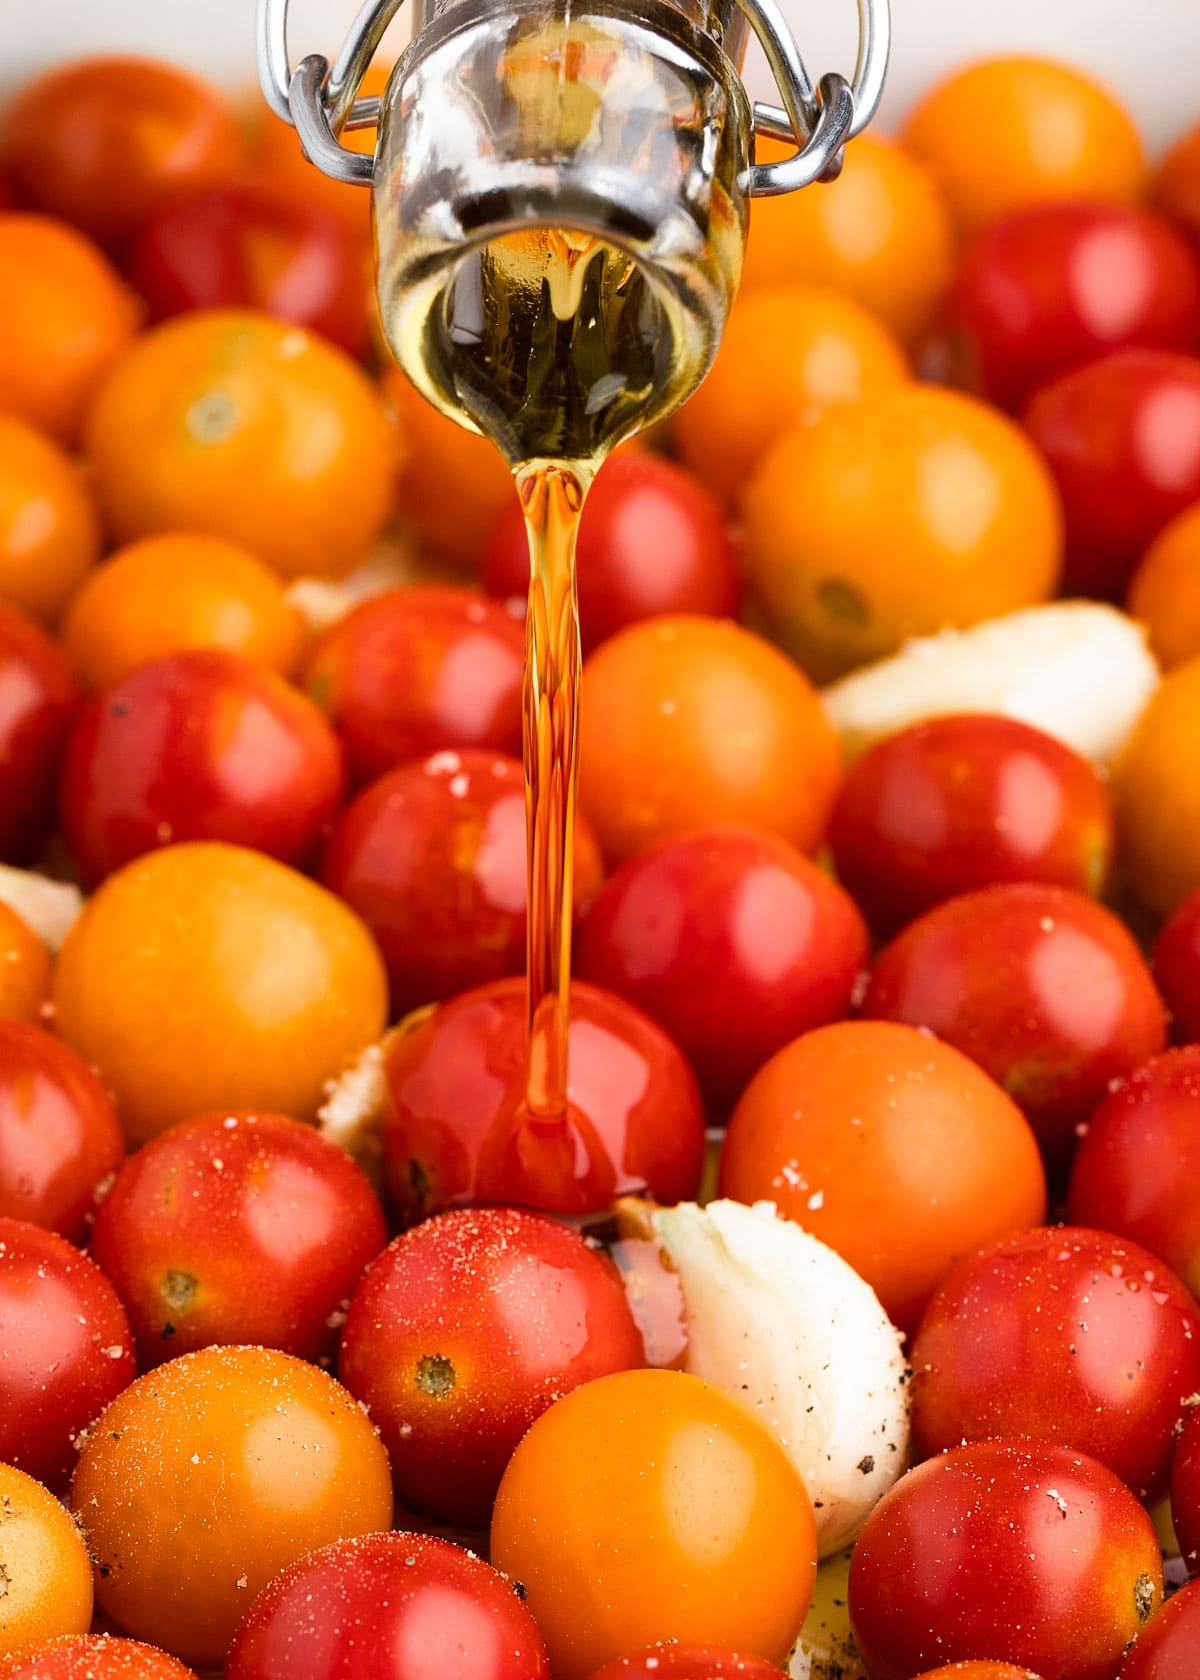 pouring olive oil into a pan of cherry tomatoes and garlic cloves